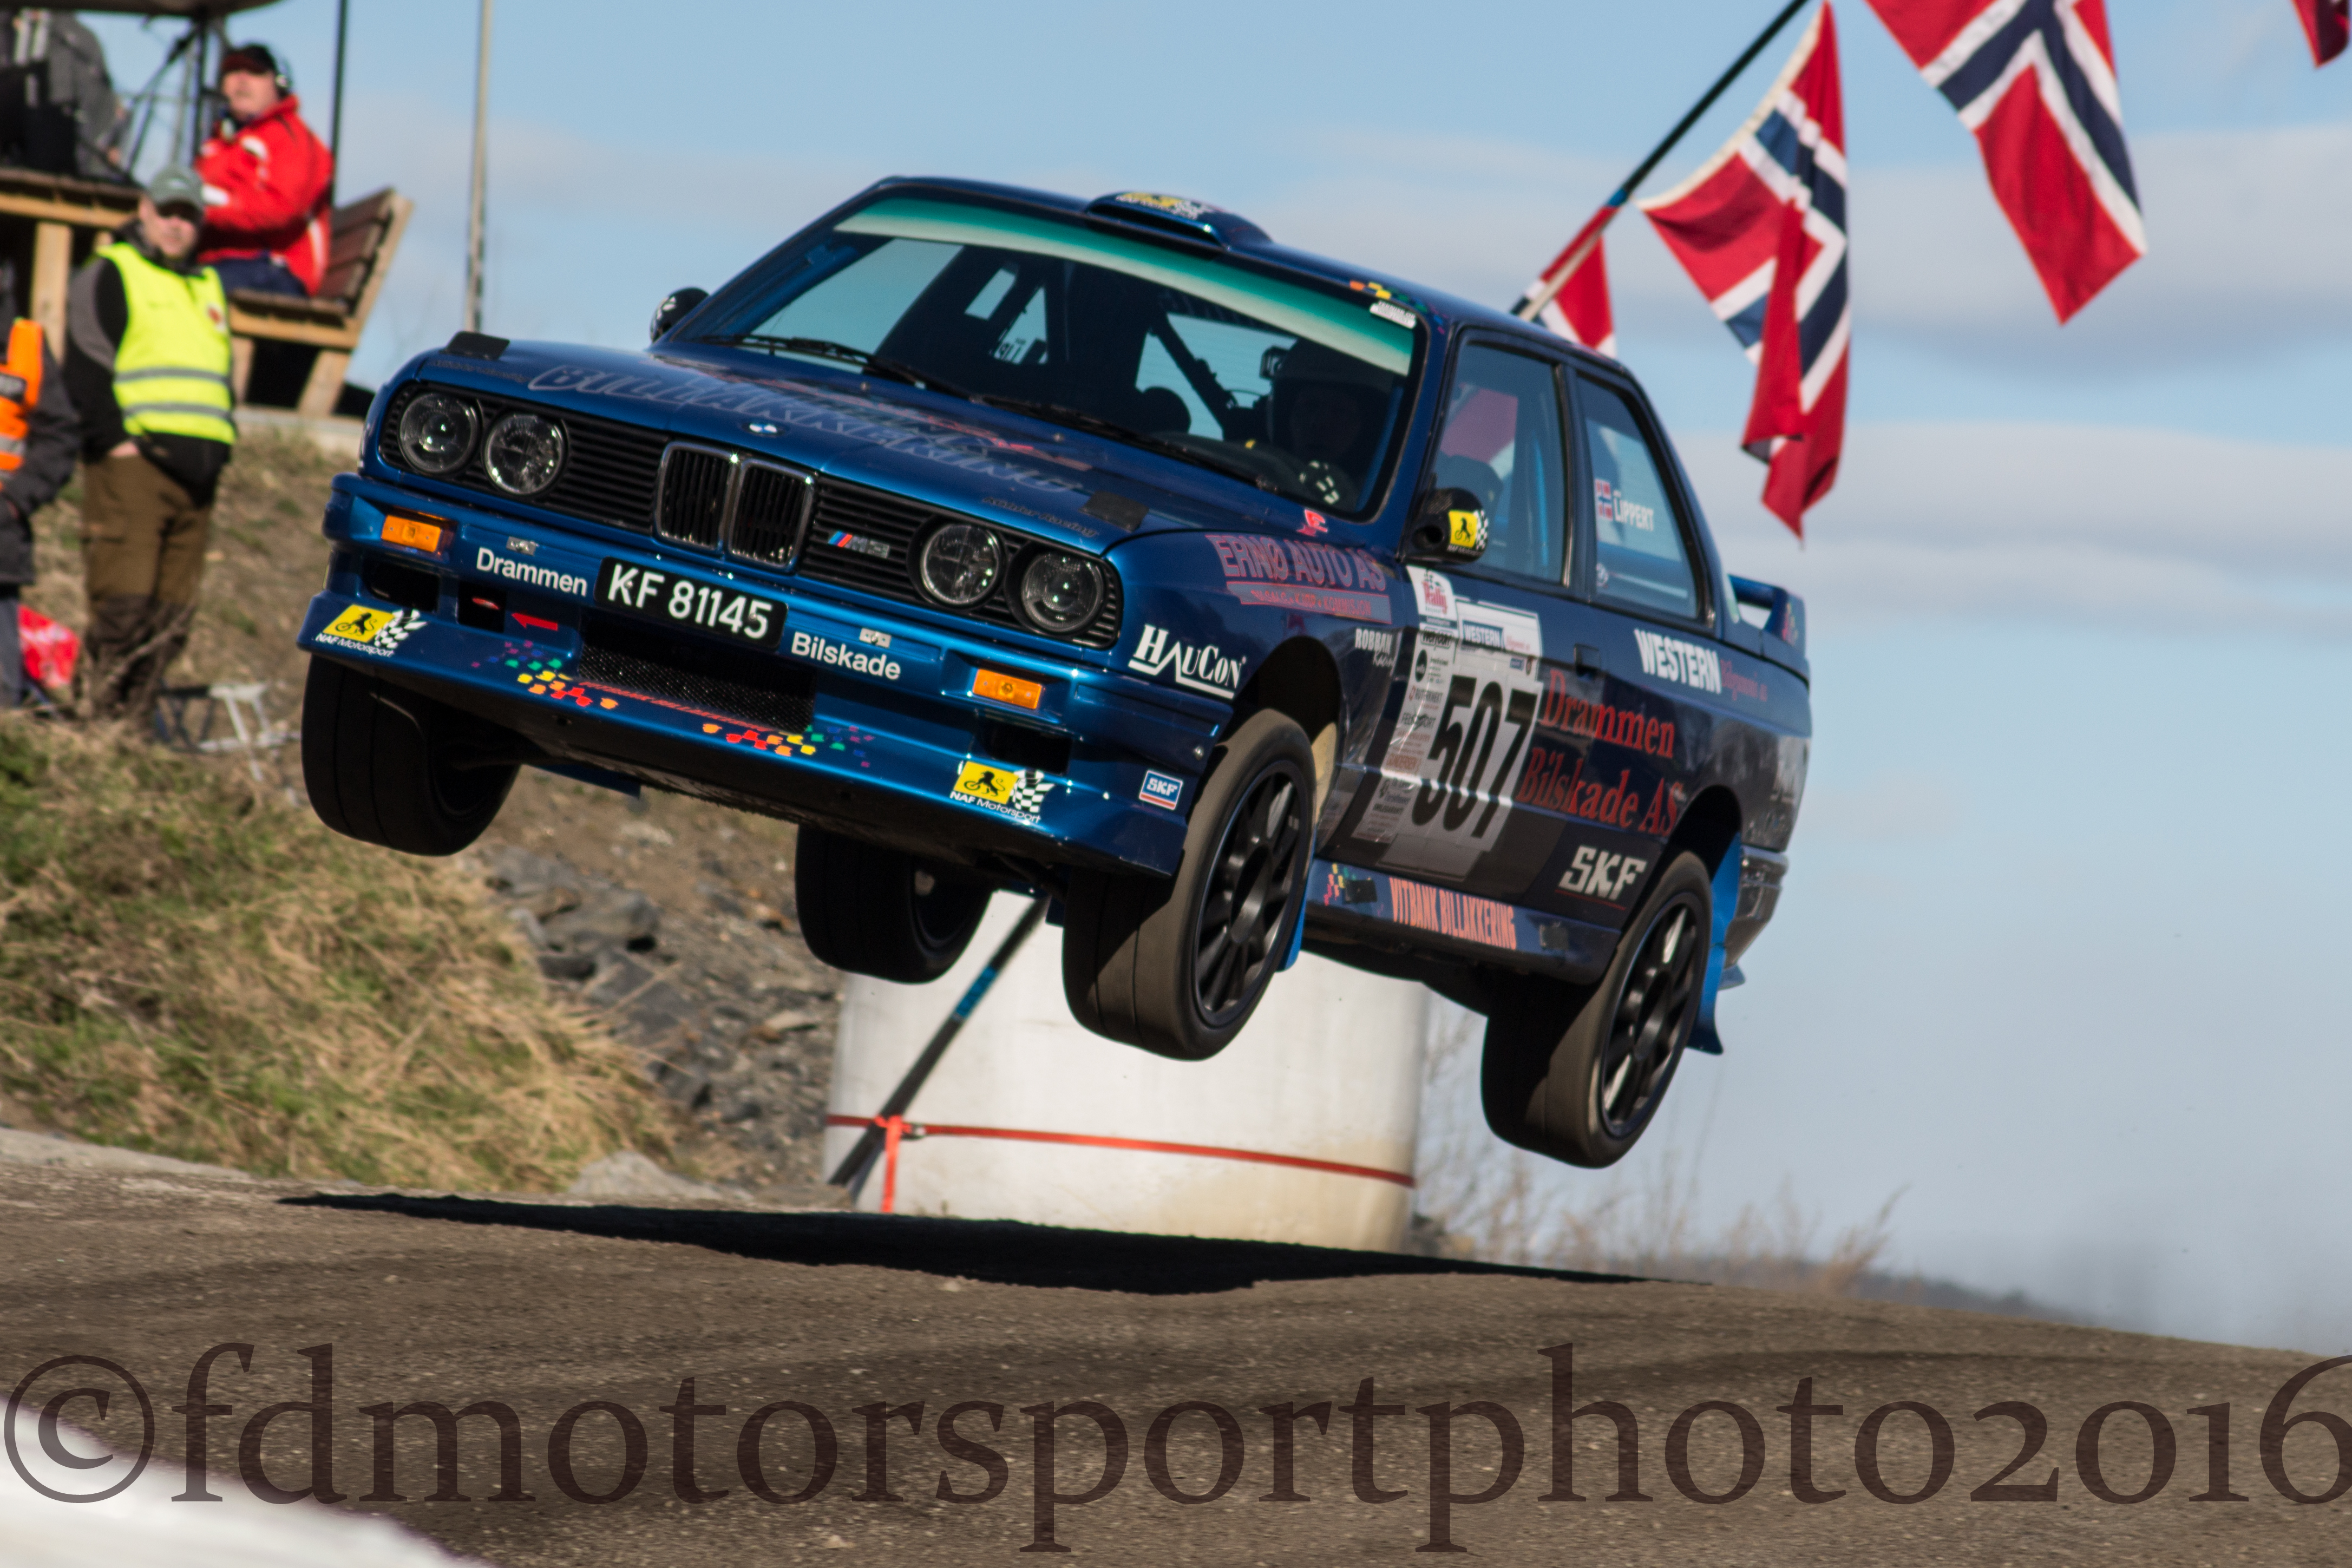 Bmw M3 E30 This Has To Be The Cleanest Rallycar In The Norwegian